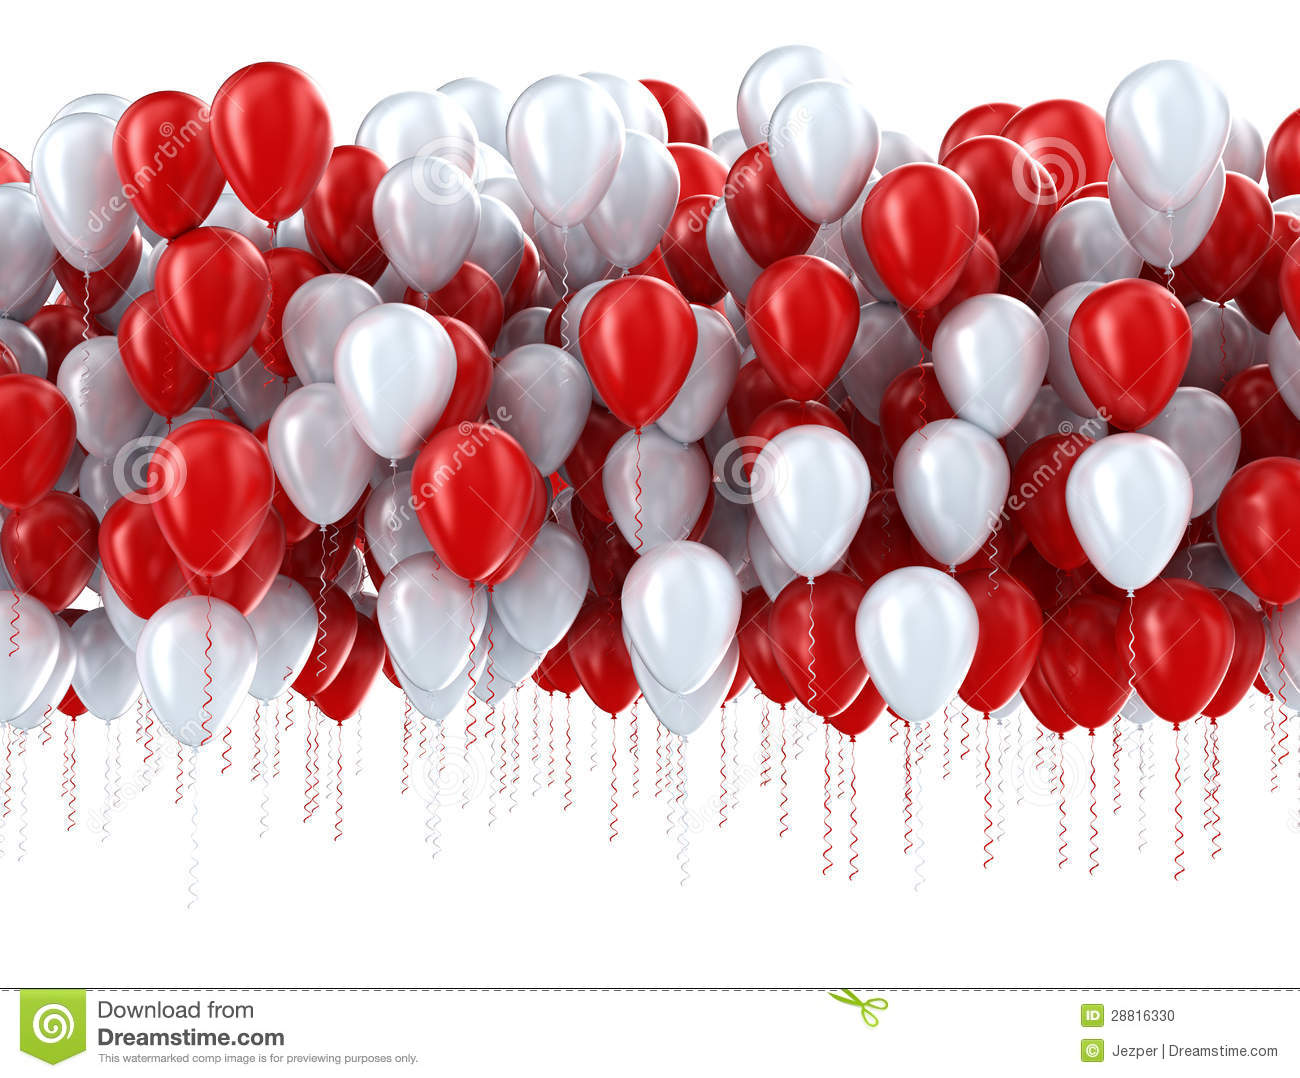 red and white party balloons stock illustration illustration of